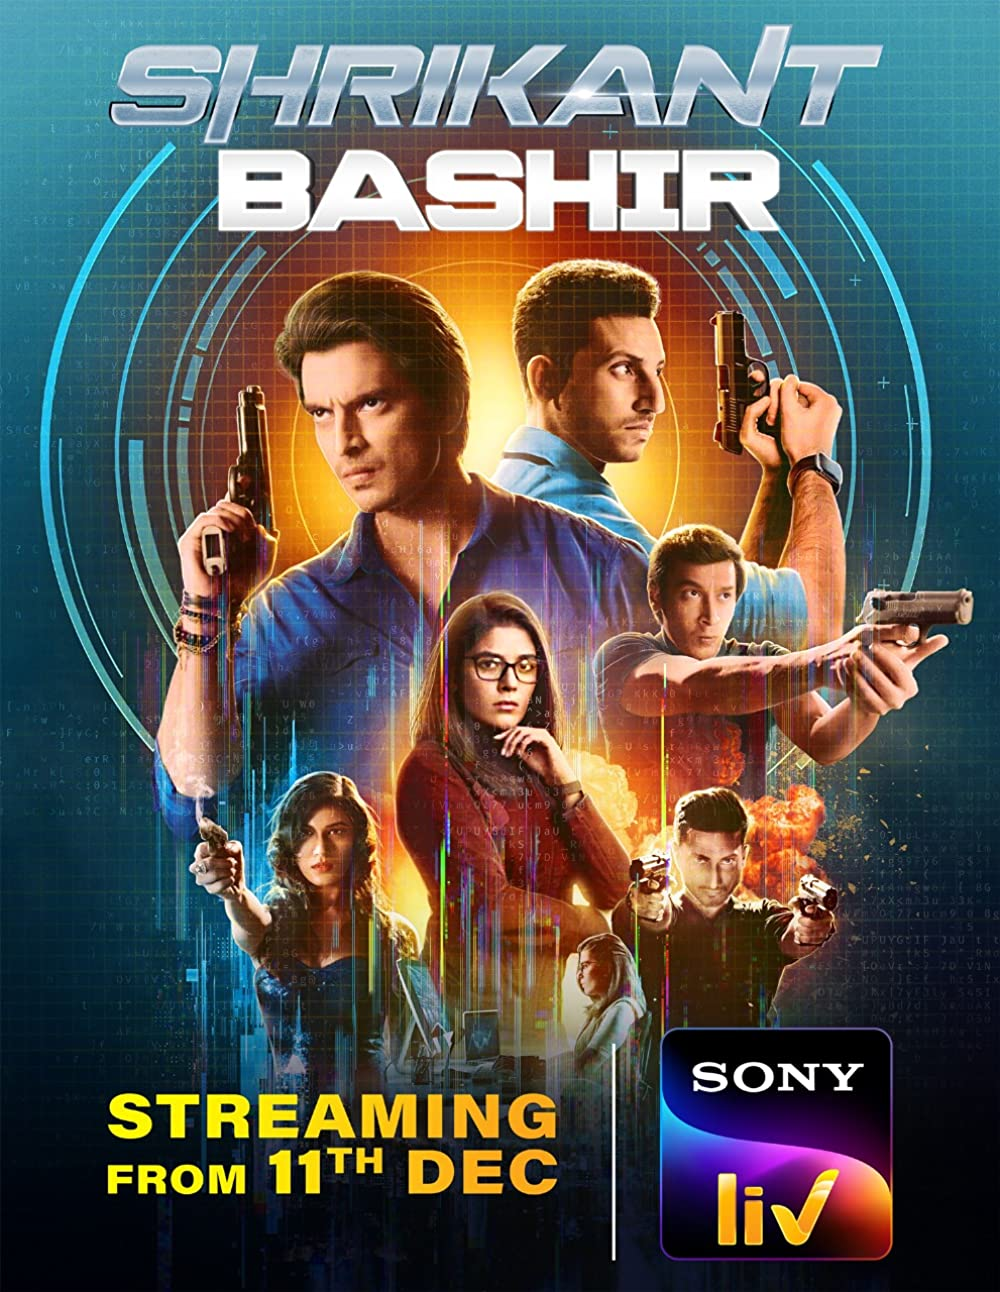 Shrikant Bashir 2020 S01 Hindi Complete SonyLiv Original Web Series 720p HDRip 2.9GB Download